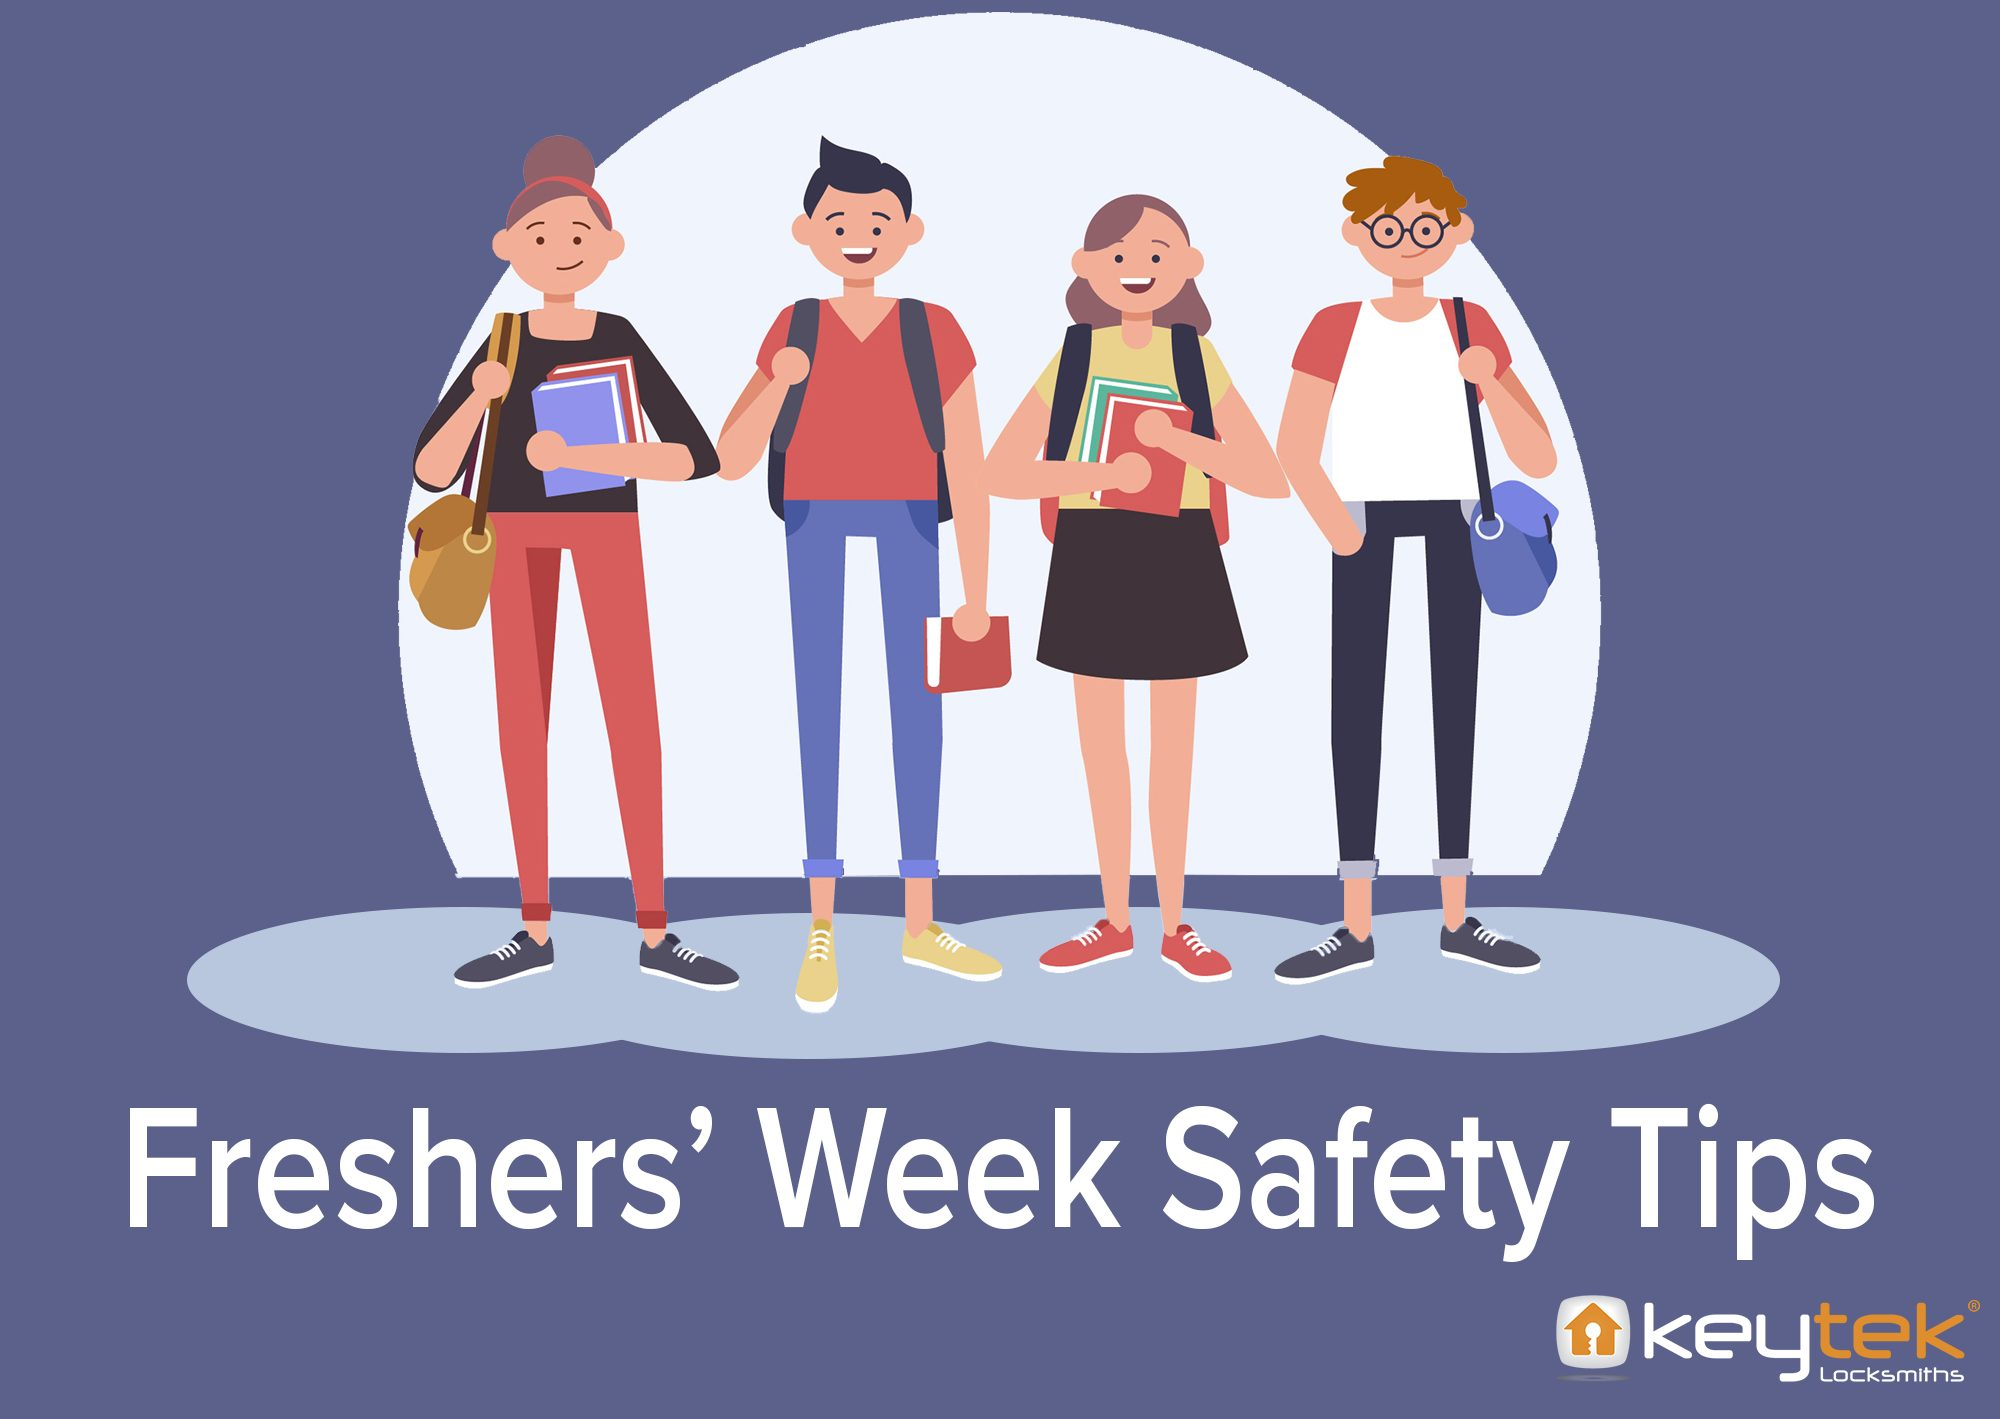 Freshers' Week Safety Tips!